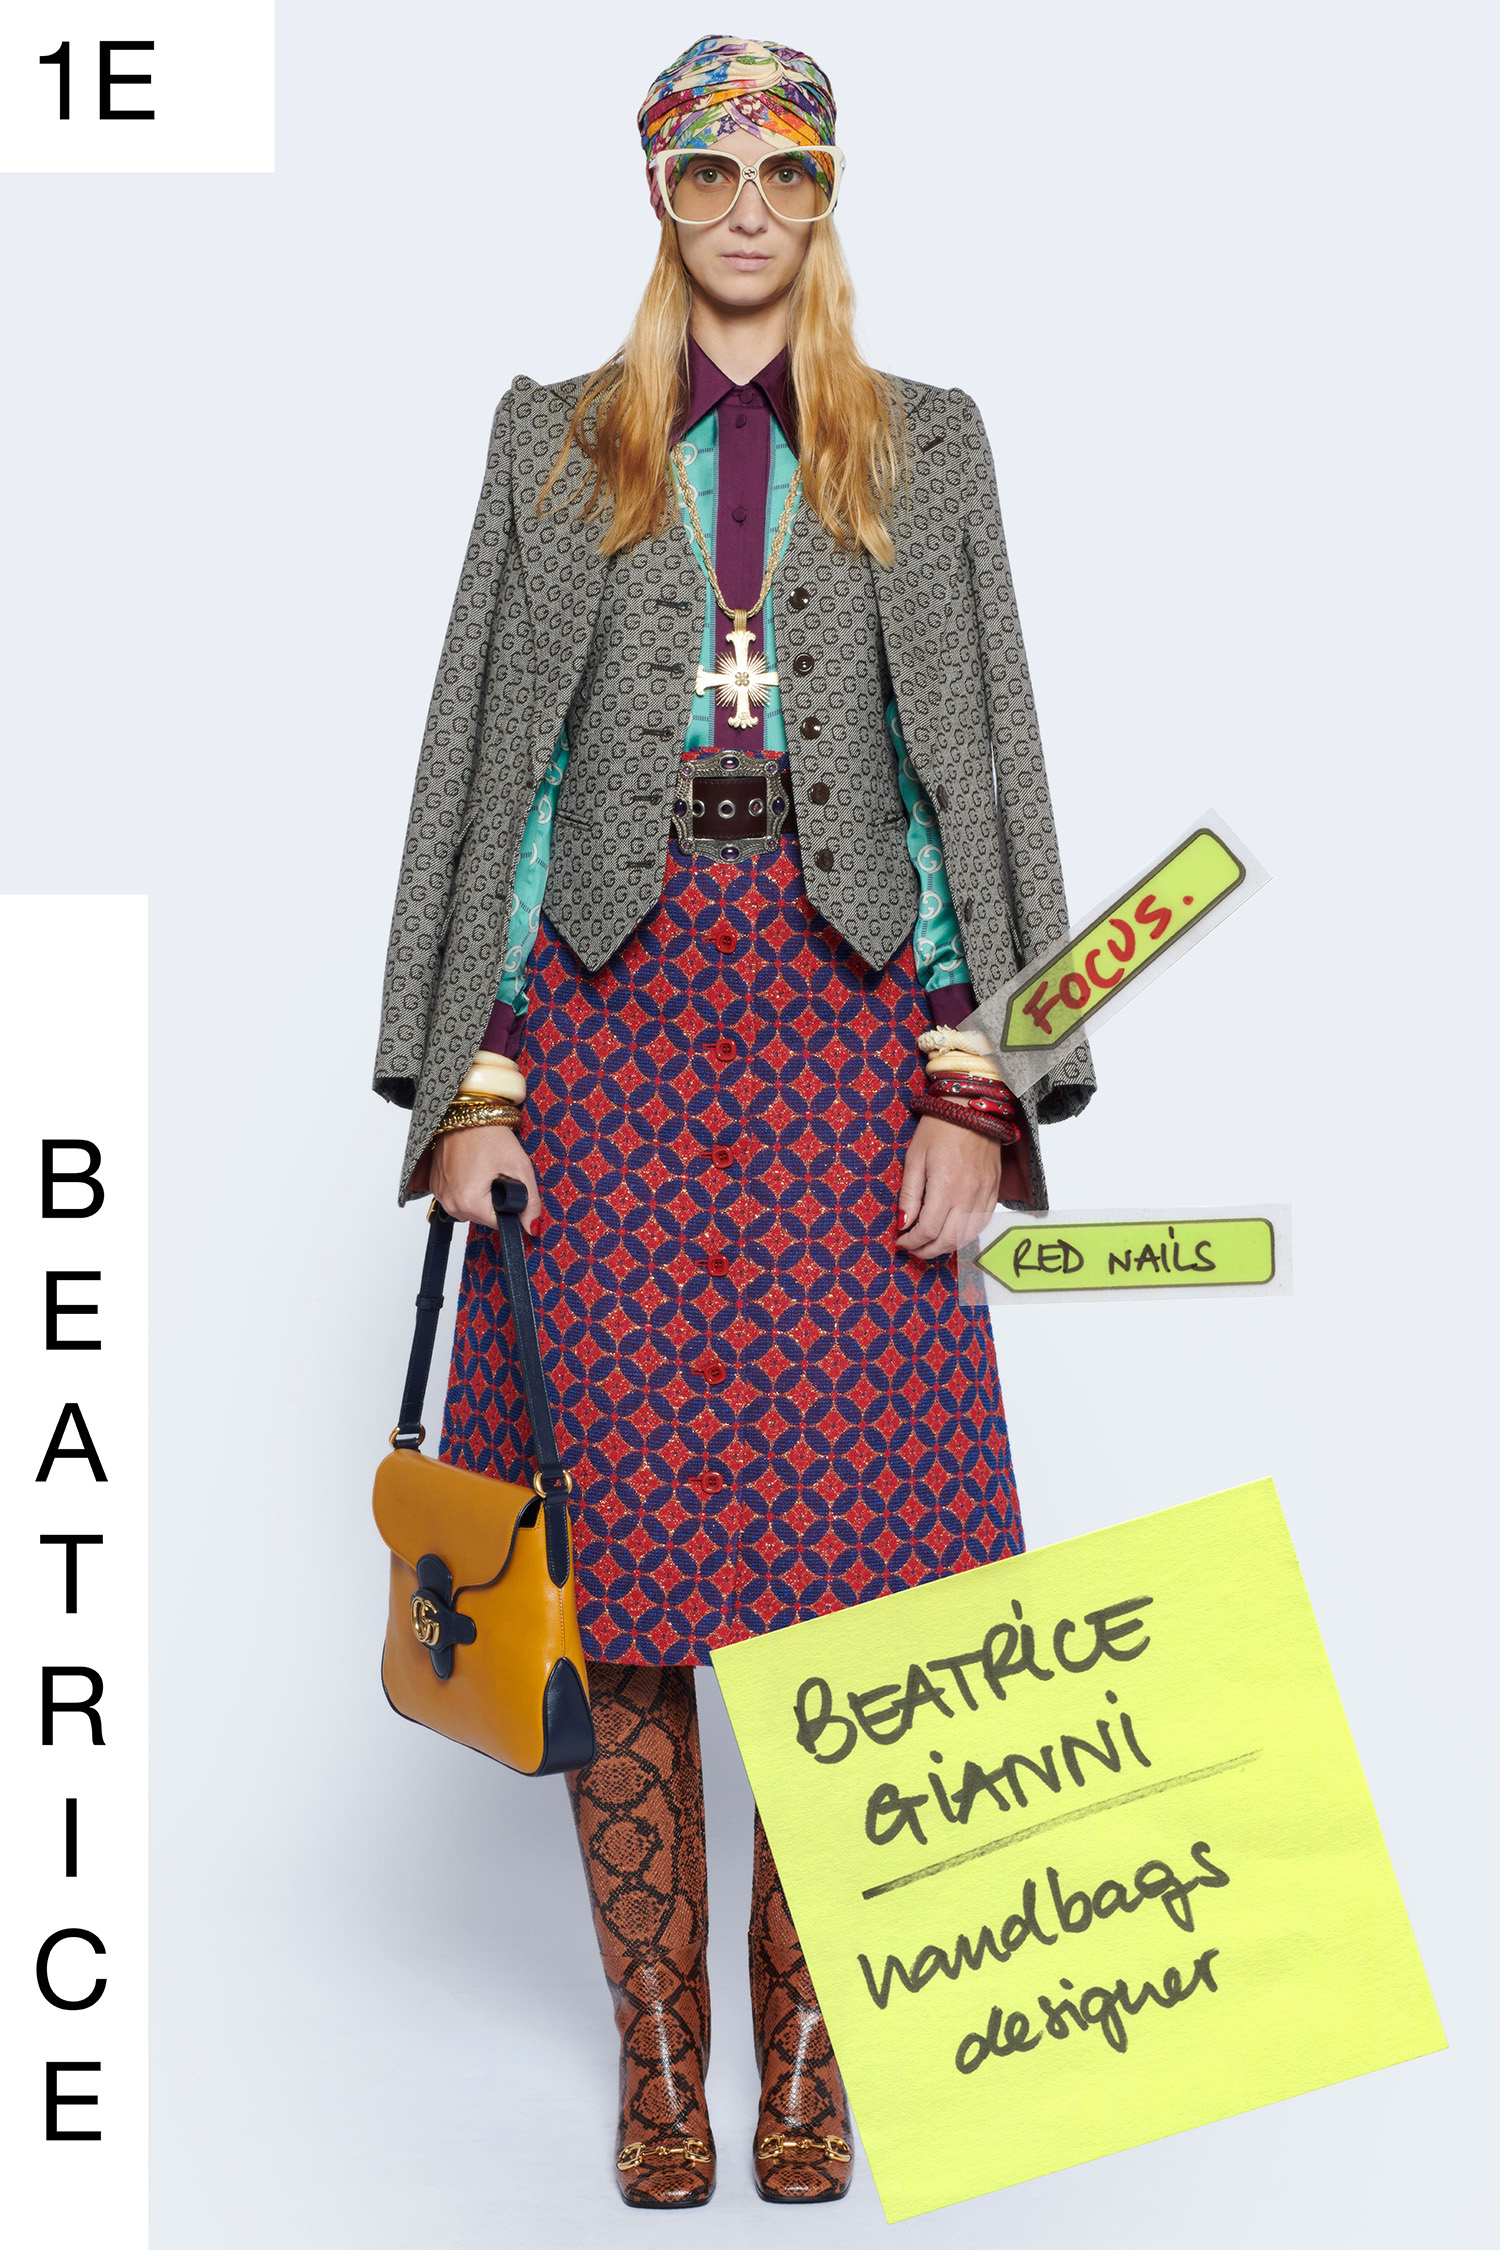 bst gucci cruise 2021 epilogue look 1